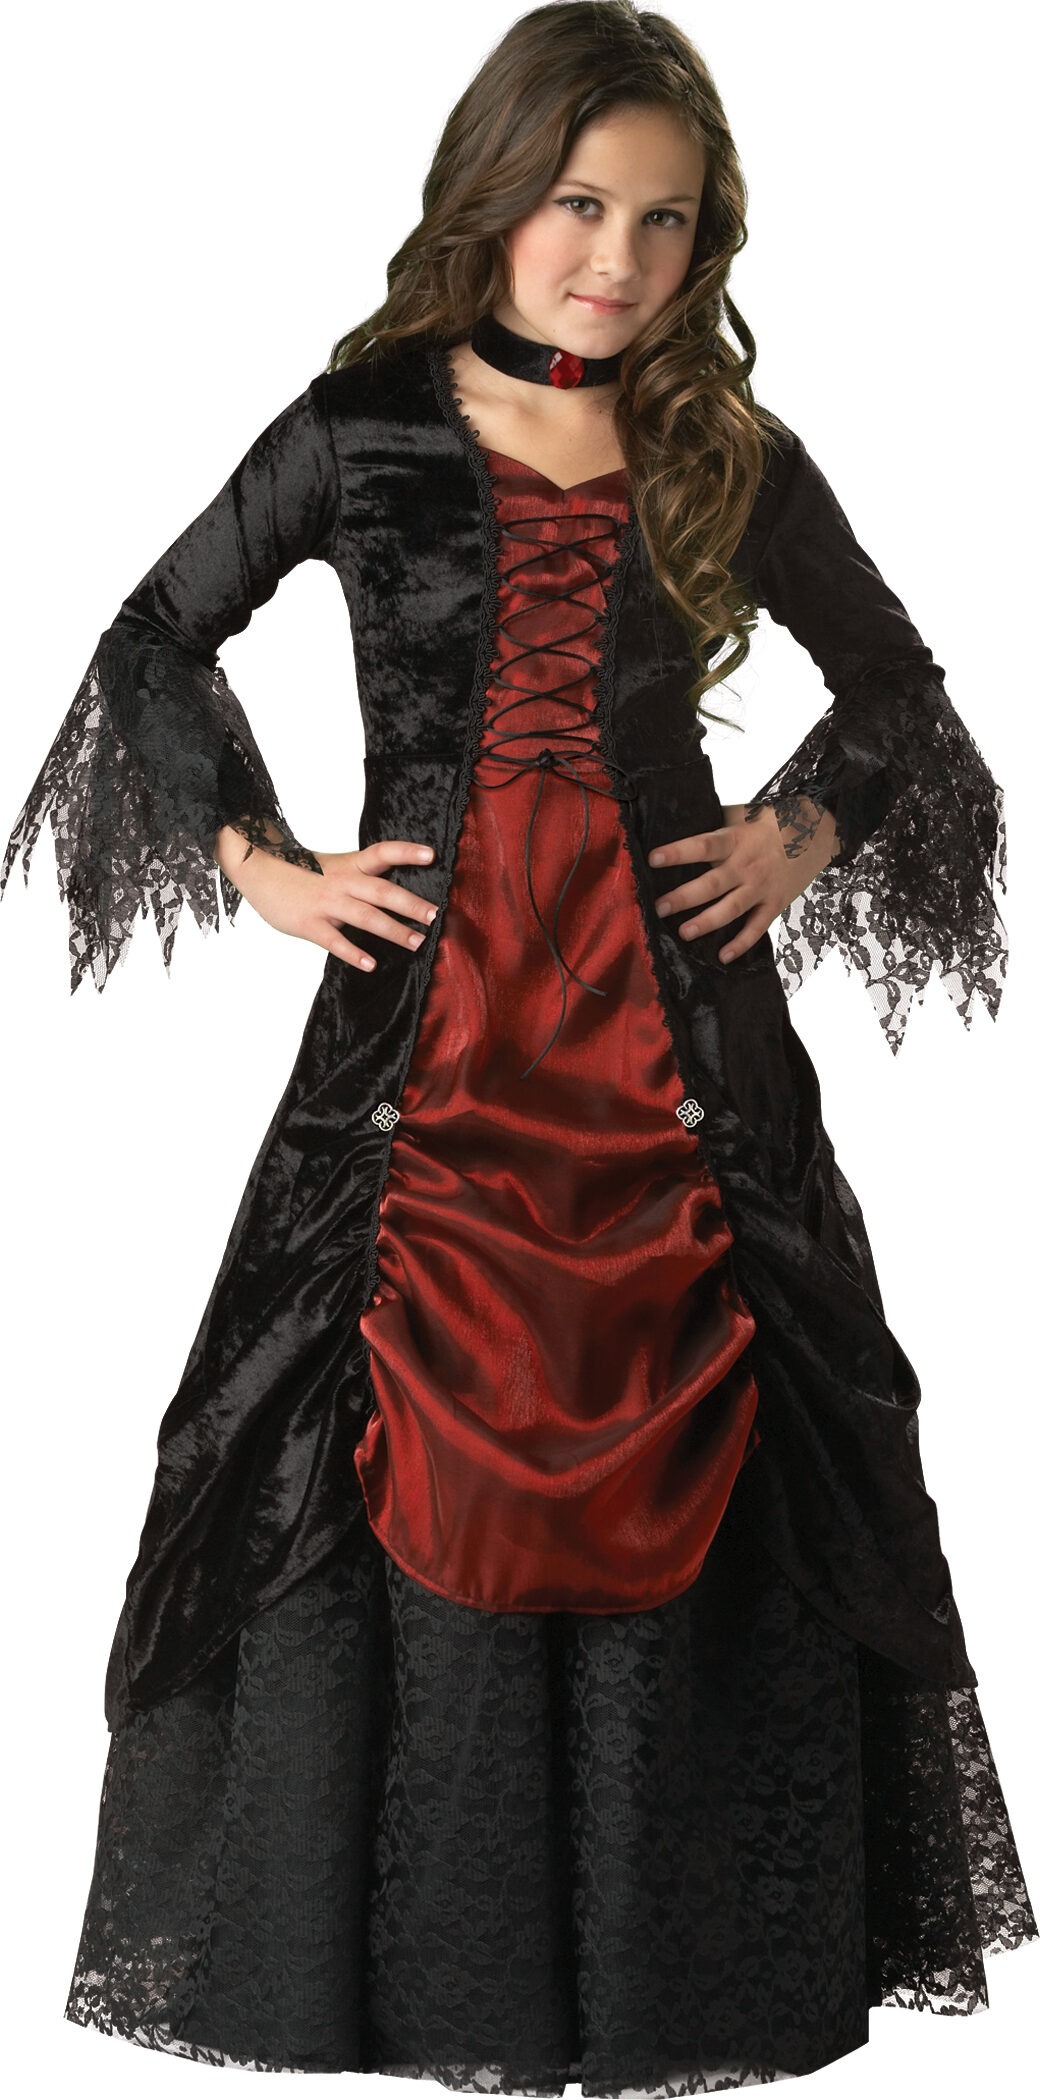 Dark Darling Vampiress Kids Costume - Mr. Costumes